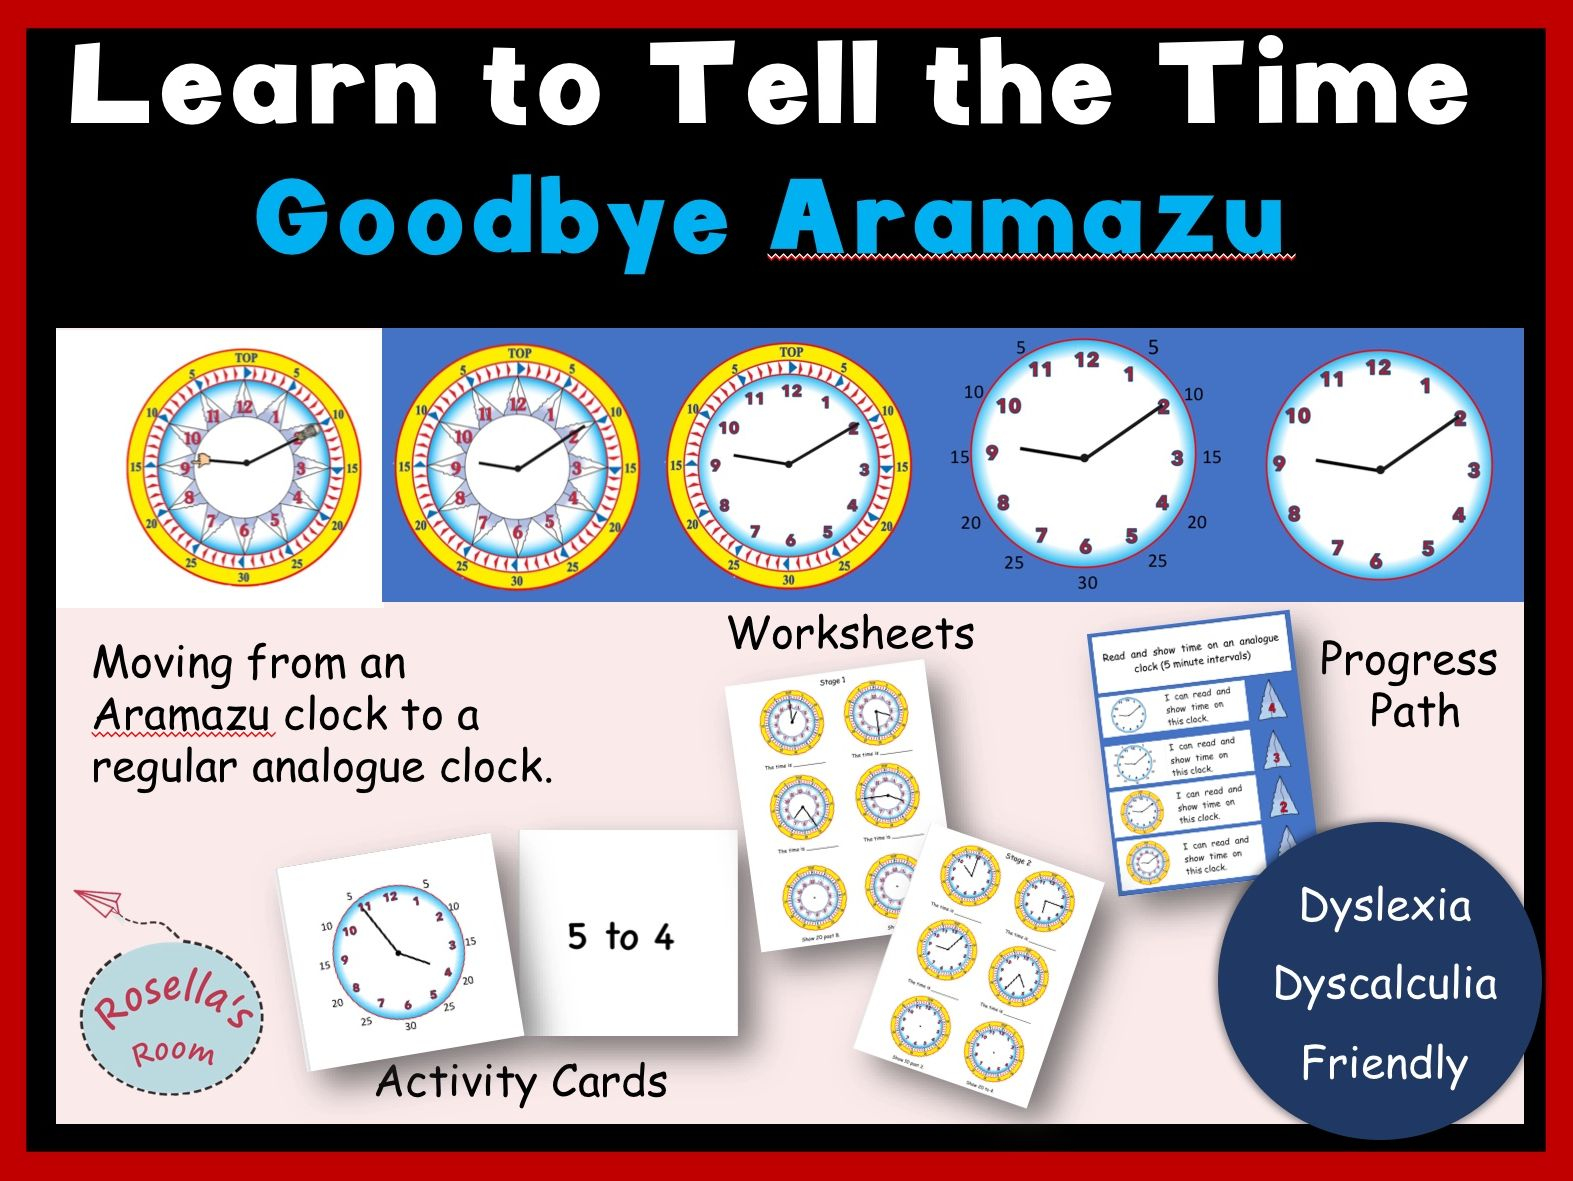 Learn to Tell the Time - Goodbye Aramazu